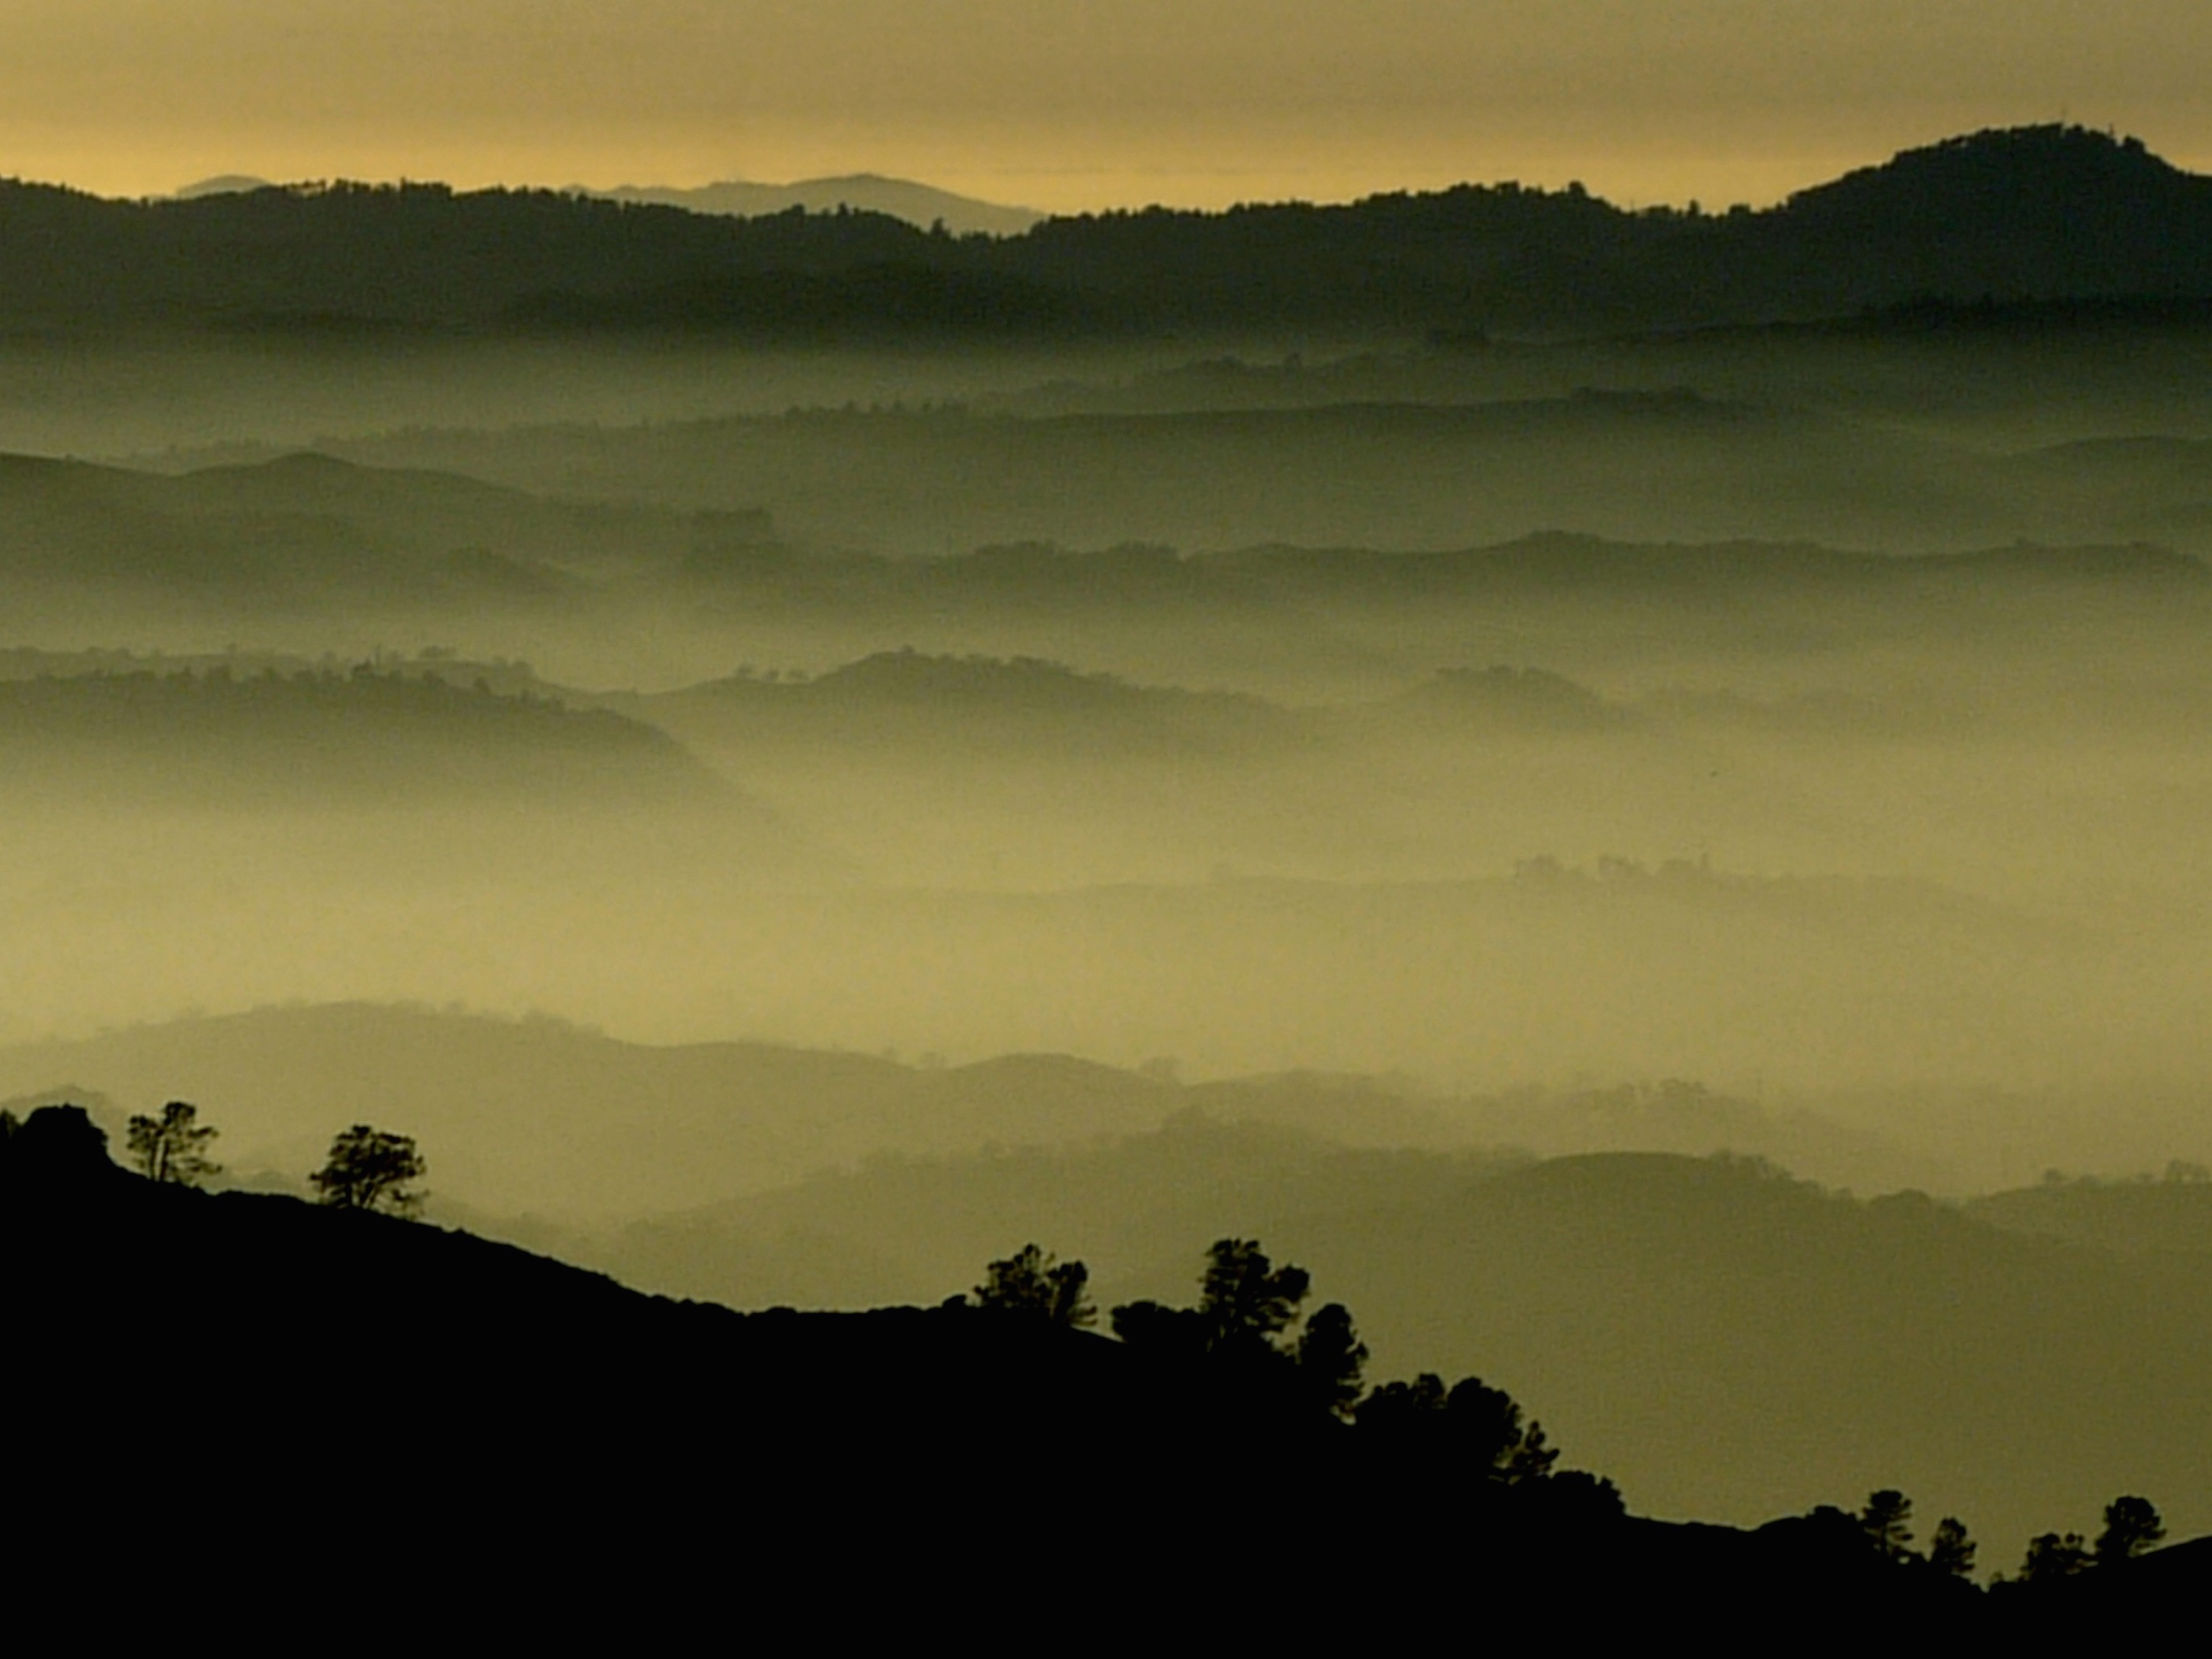 Diablo's western foothills slither through the fog.